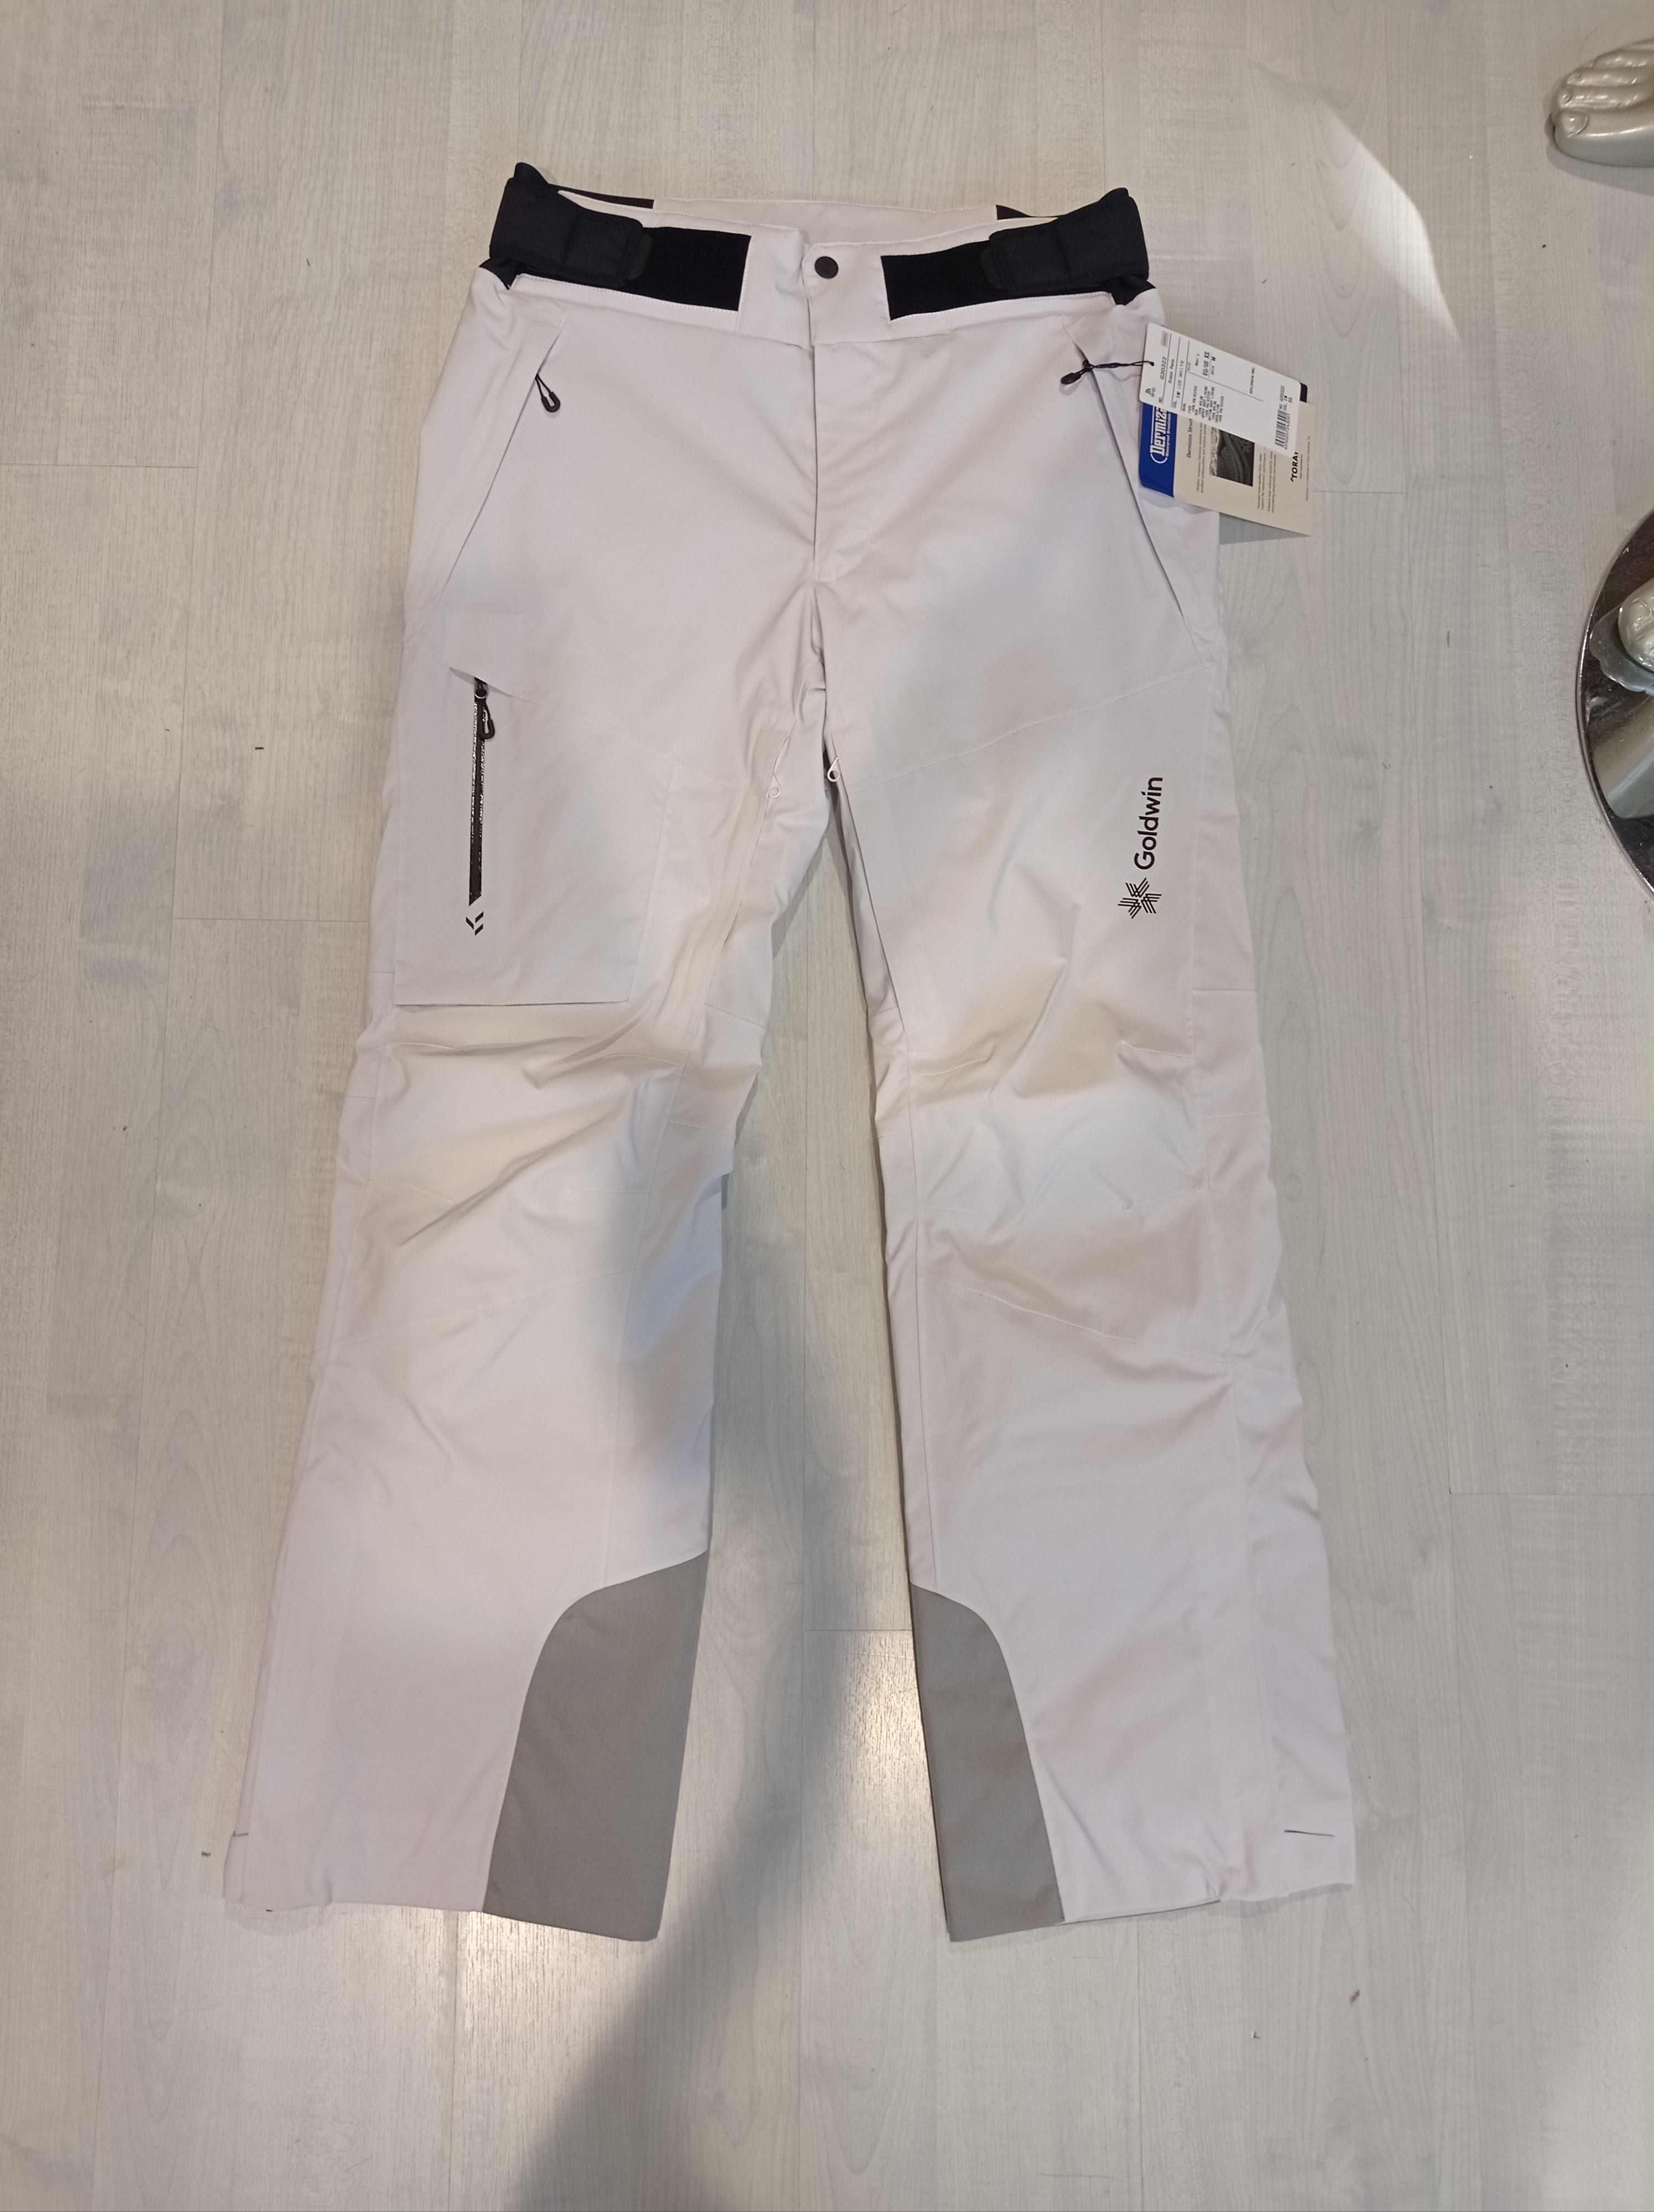 GOLDWIN MEN KRATOS PANTS - ICE WHITE - 2021